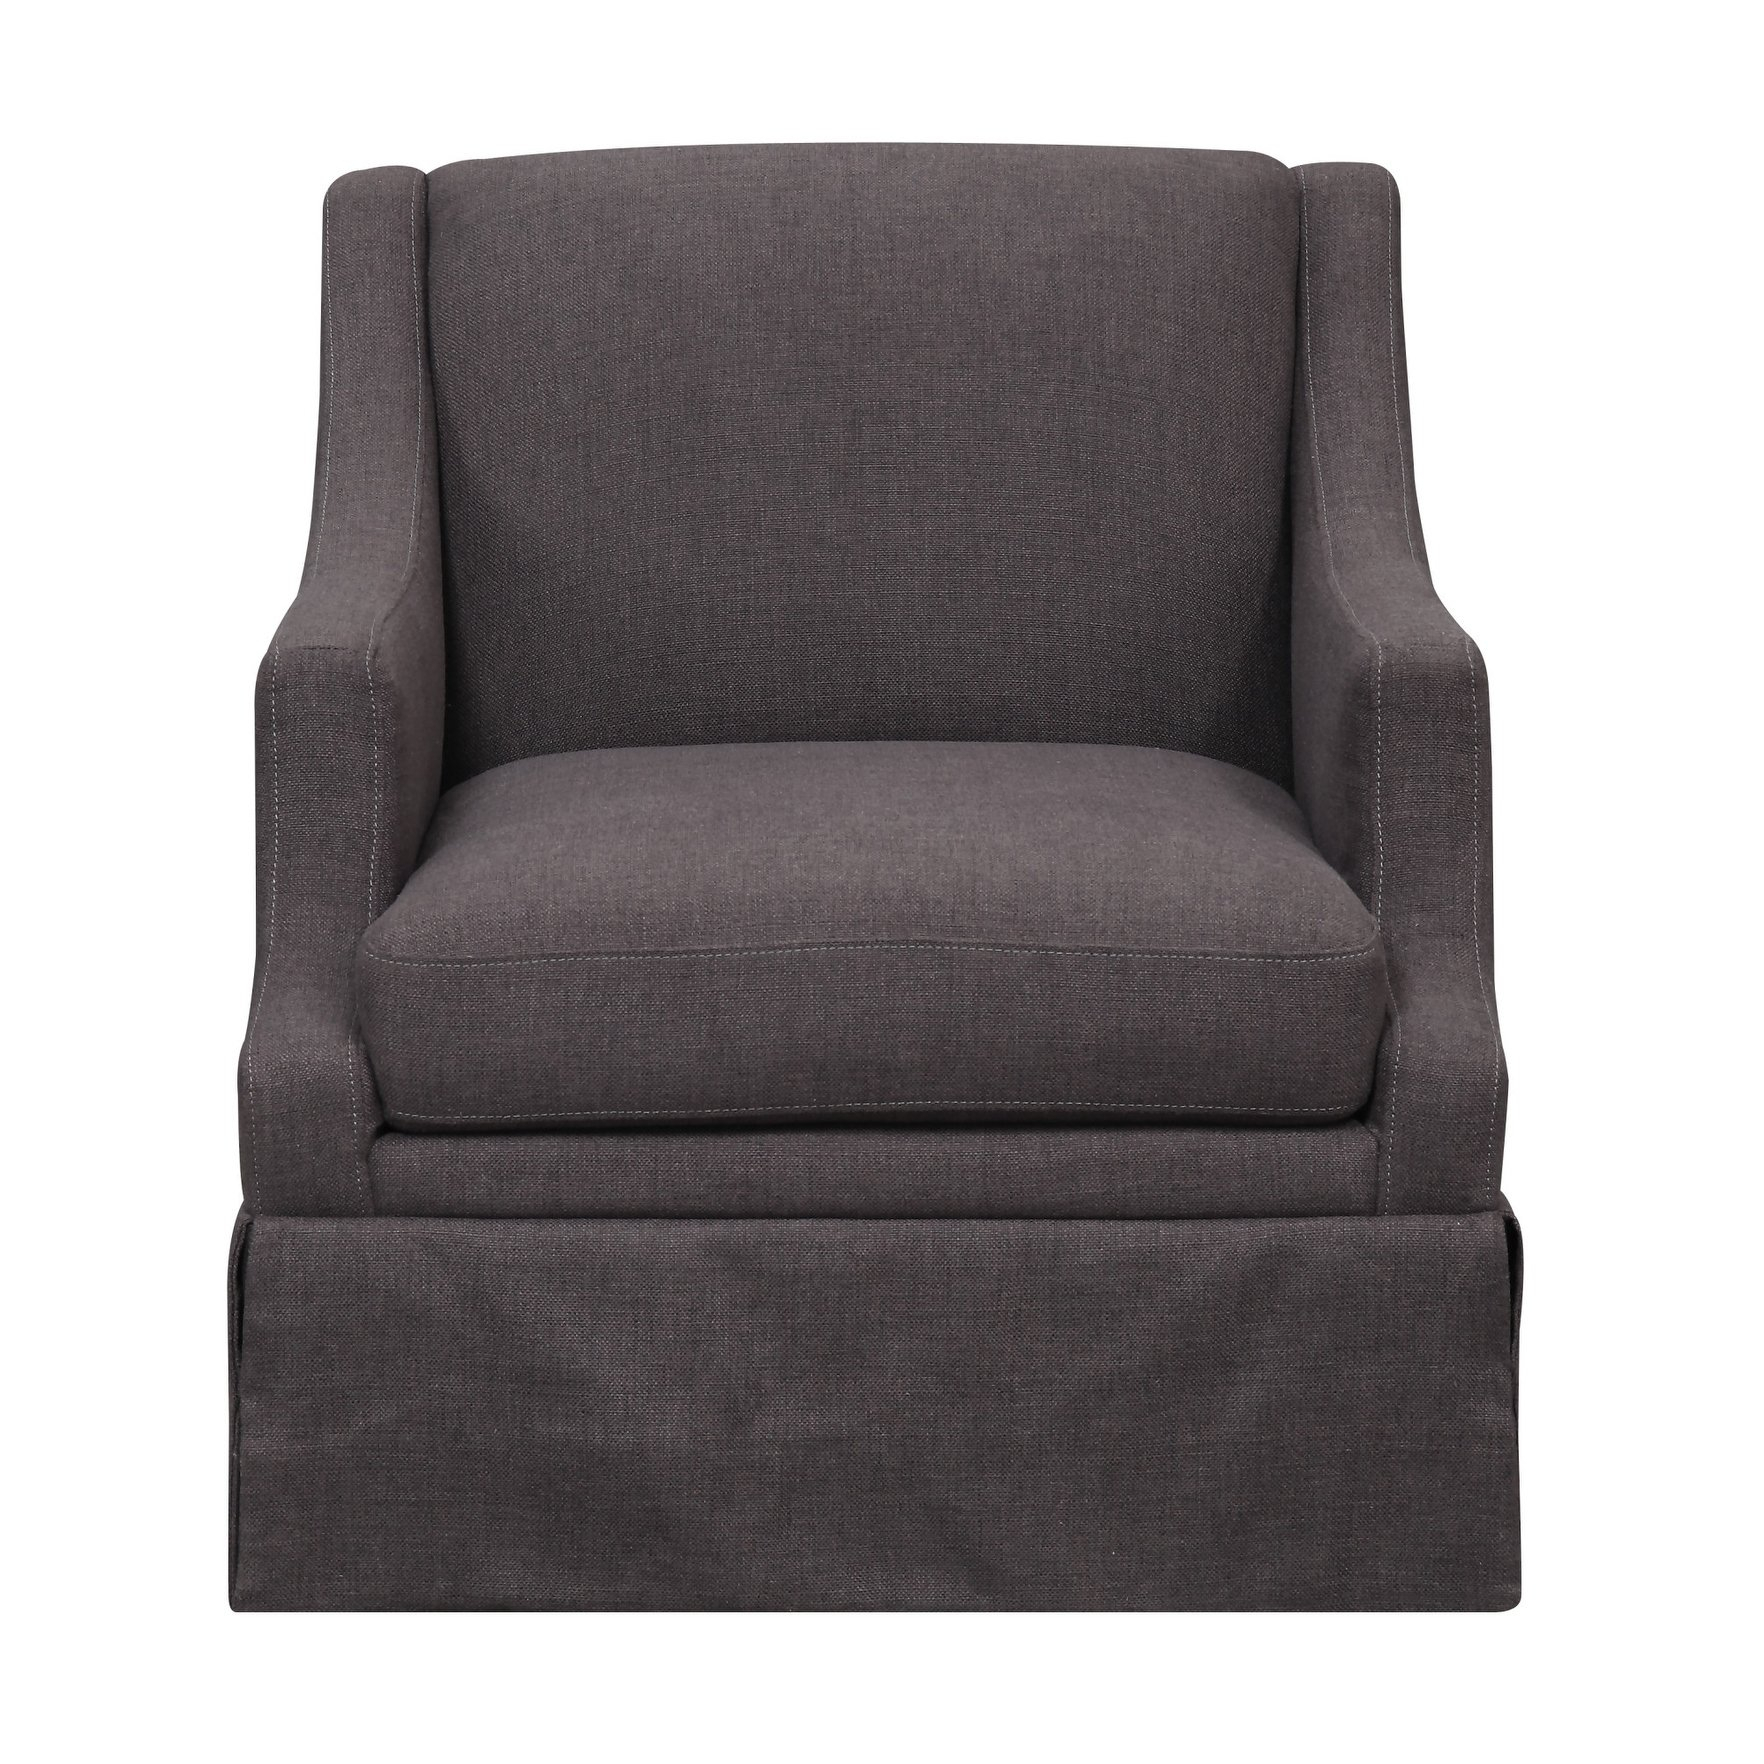 Shop Emerald Home Mckinley Charcoal Swivel Glider Slip Chair – Free For Charcoal Swivel Chairs (Image 18 of 20)